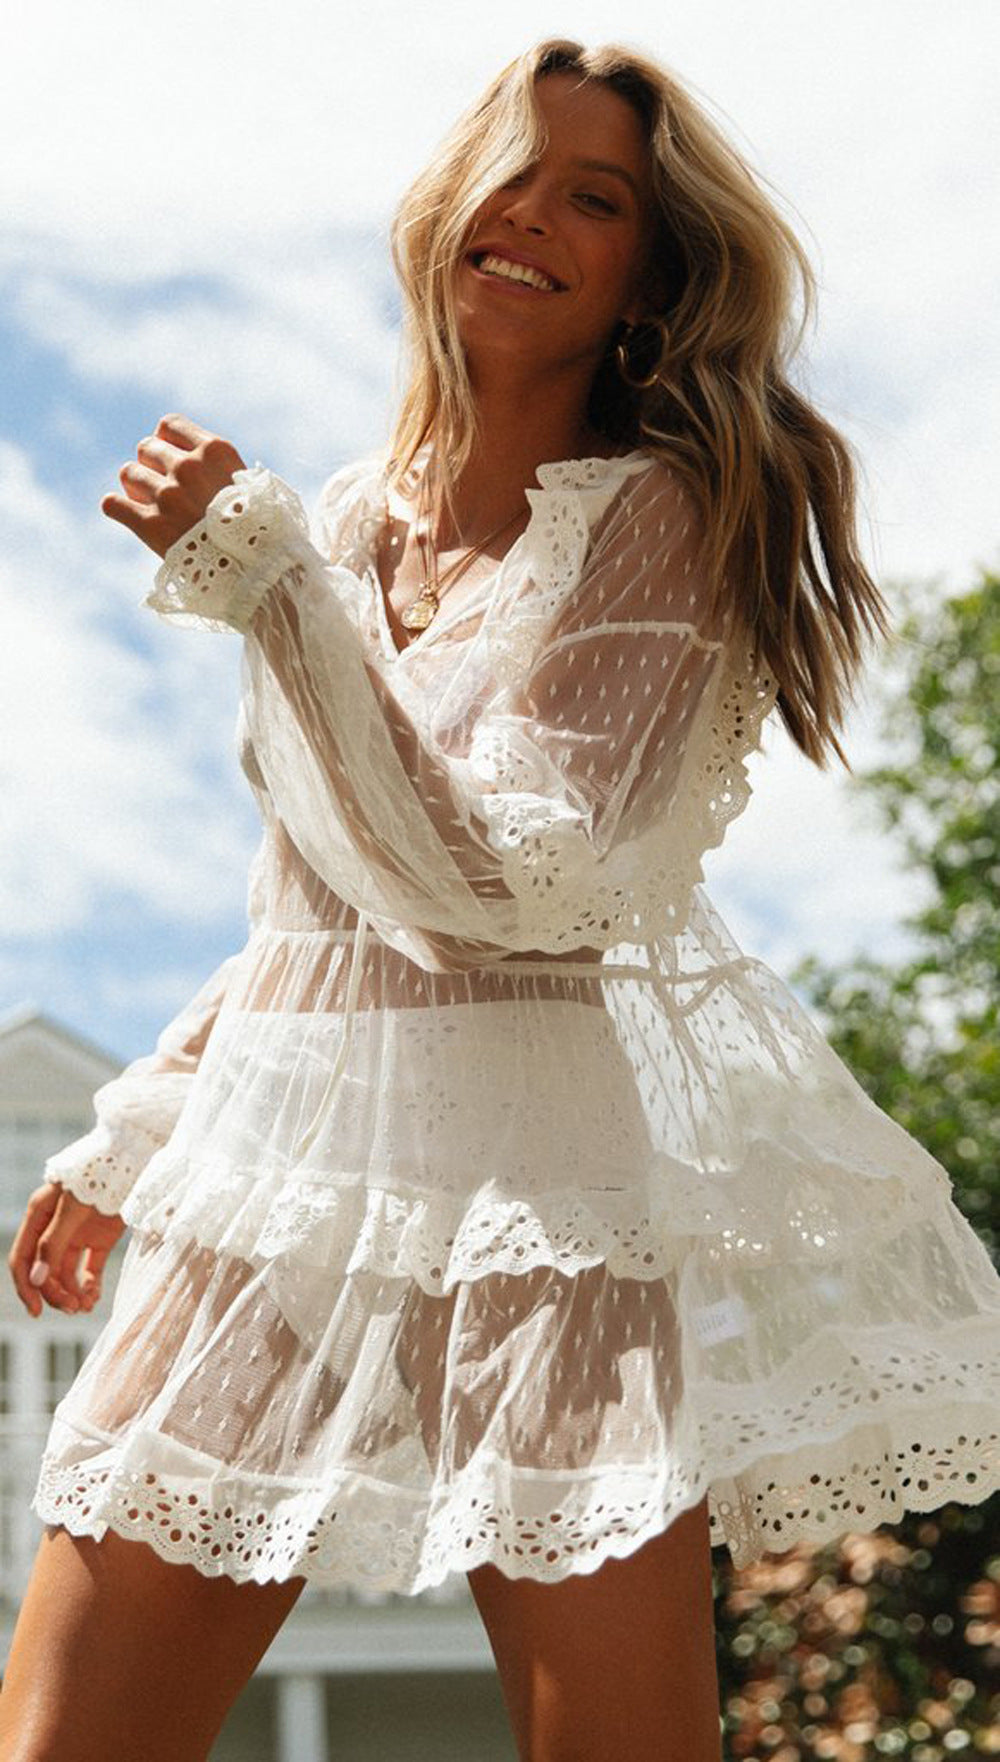 Crochet Ruffle Black White Short Lace Dress Summer Women See Through Sexy Mini Transparent Dress Boho Beach Dress